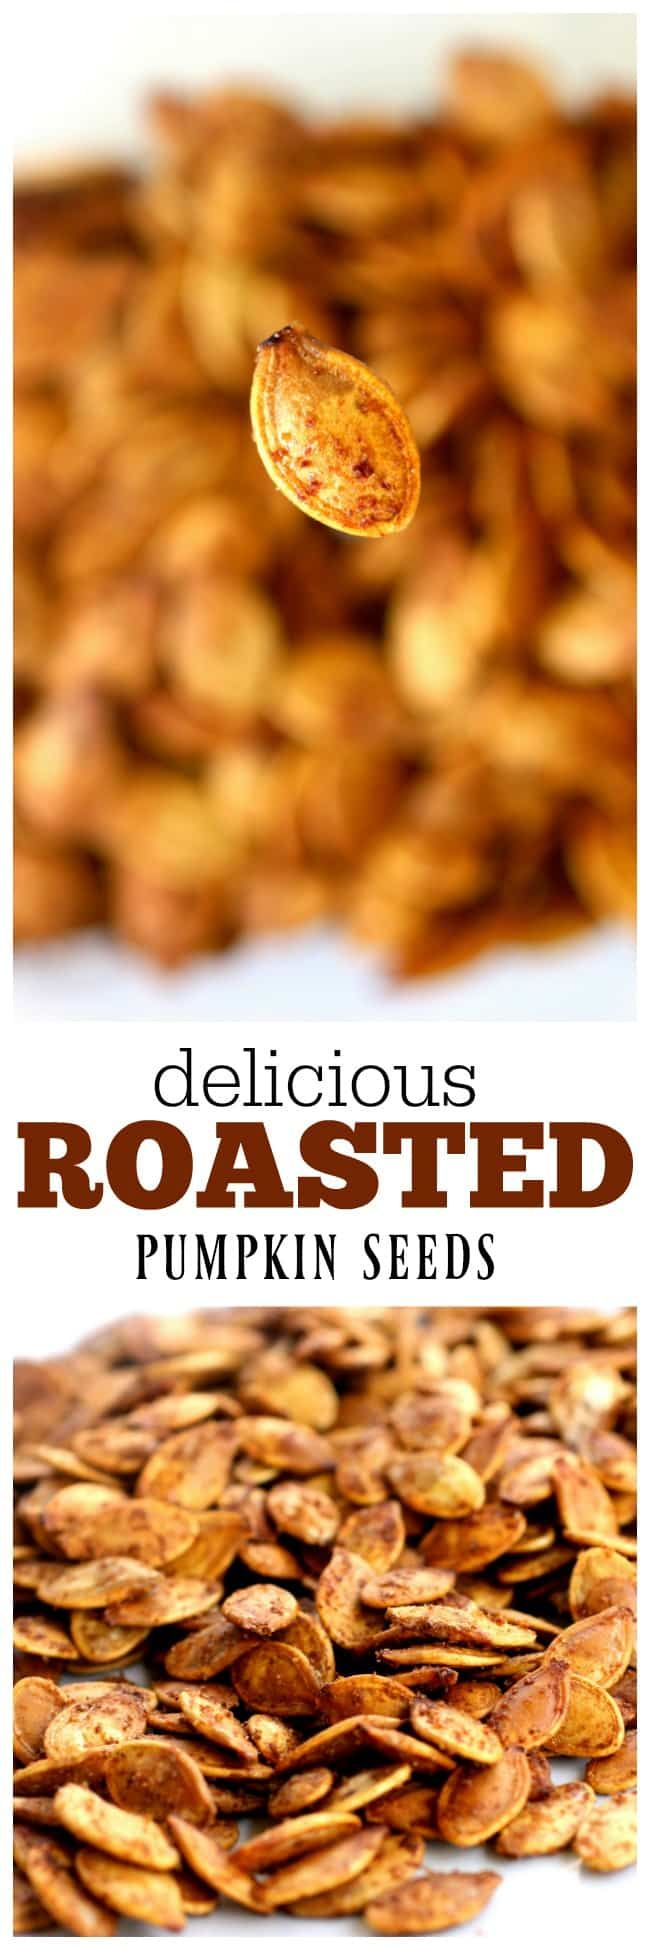 Roasted Pumpkin Seeds - The Girl Who Ate Everything